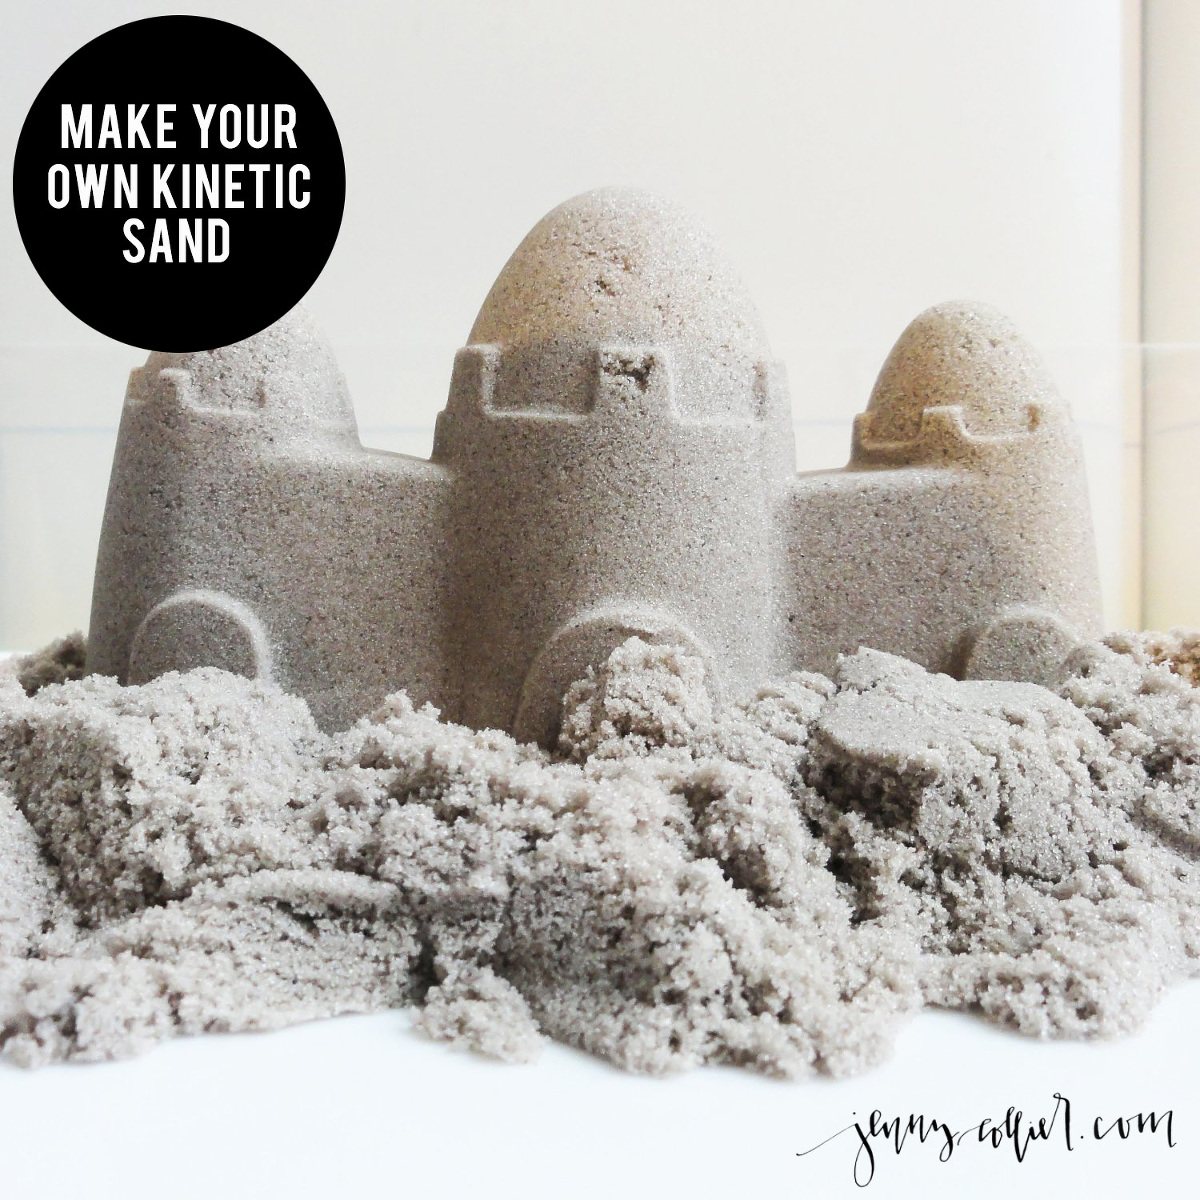 Make Your Own Kinetic Sand 187 Jenny Collier Blog